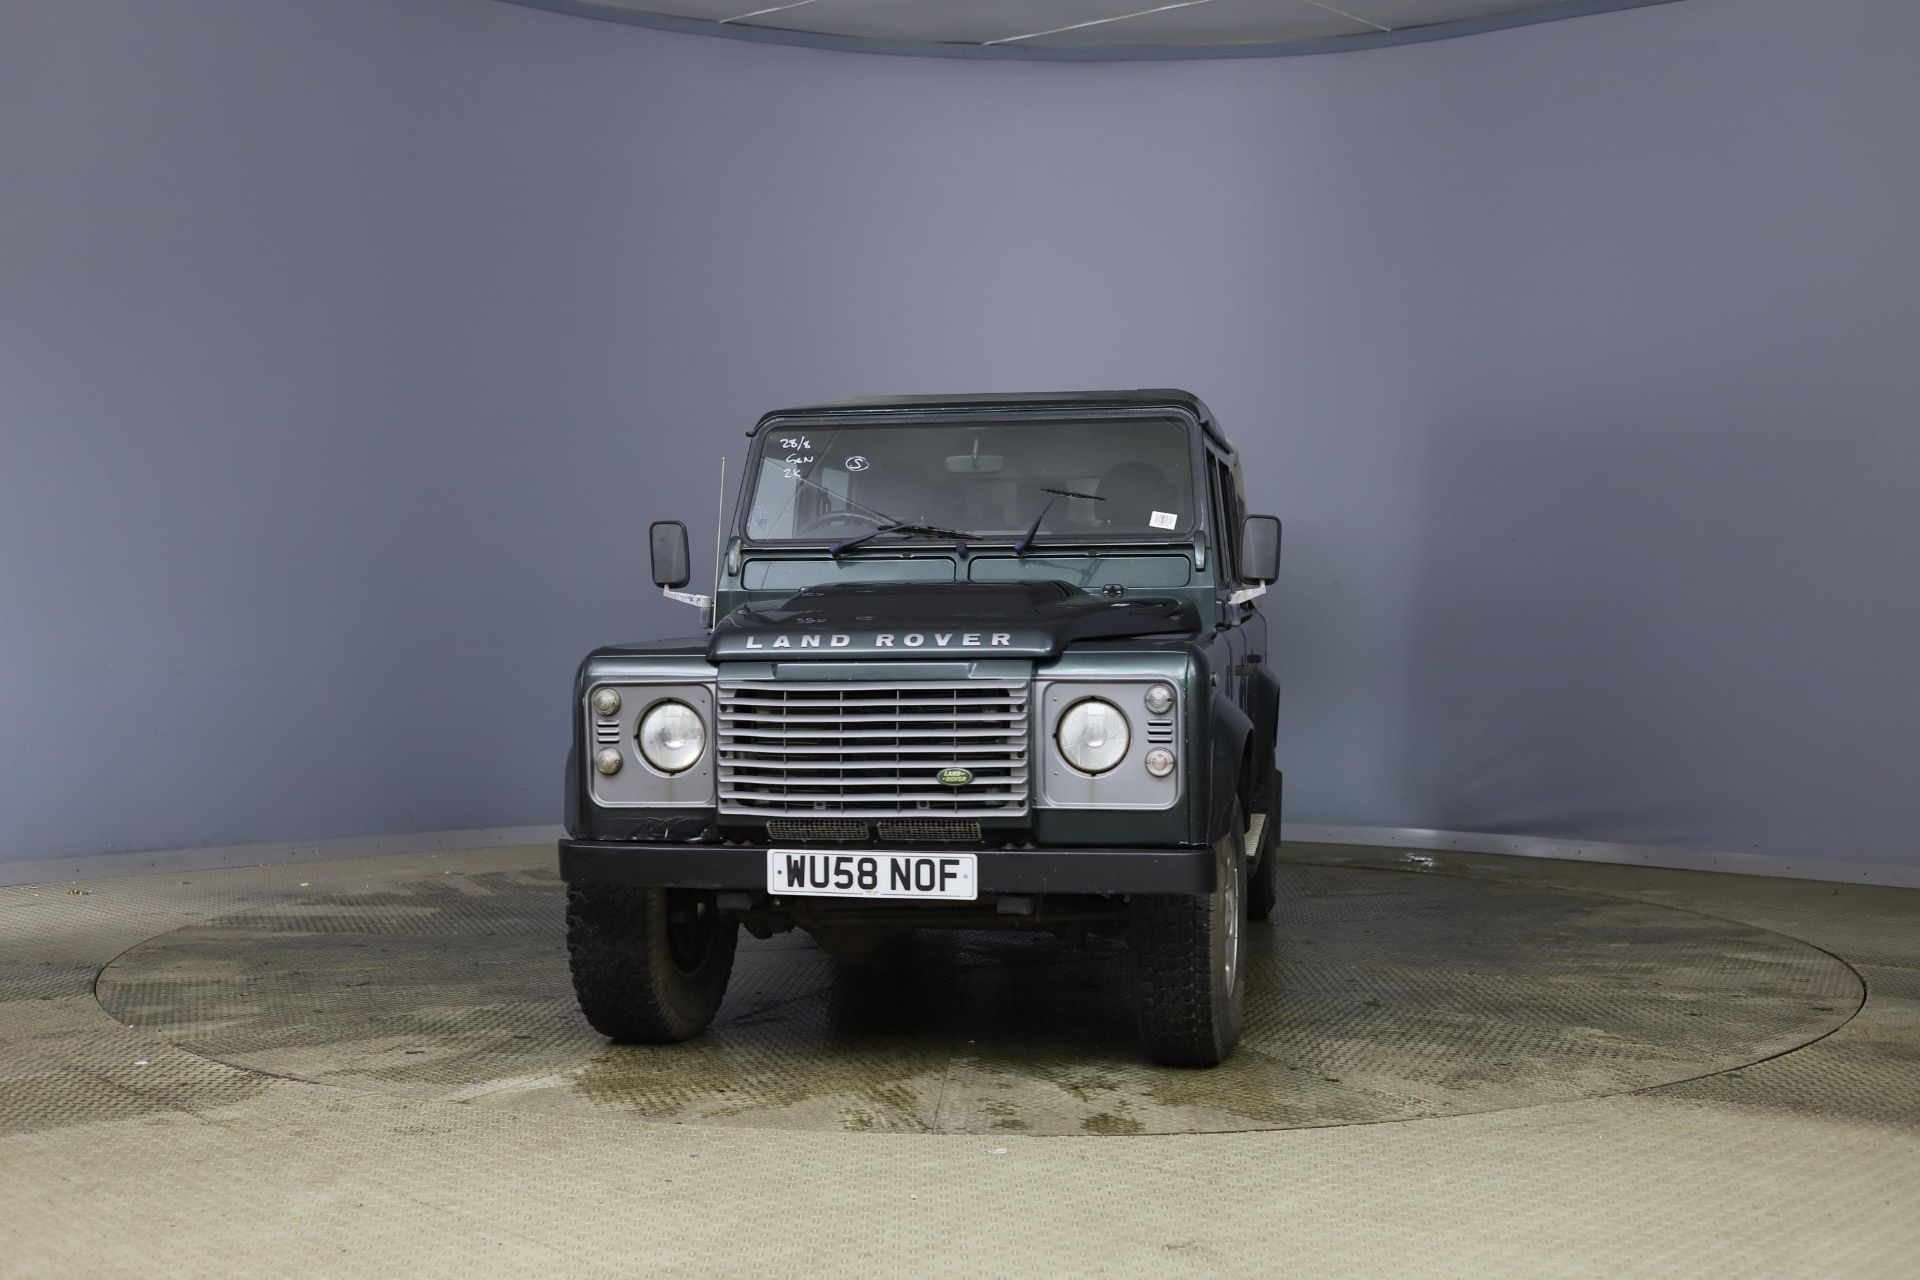 2008/58 REG LAND ROVER DEFENDER 110 XS DC LWB 2.4 DIESEL GREEN LIGHT 4X4, SHOWING 2 FORMER KEEPERS - Image 2 of 12